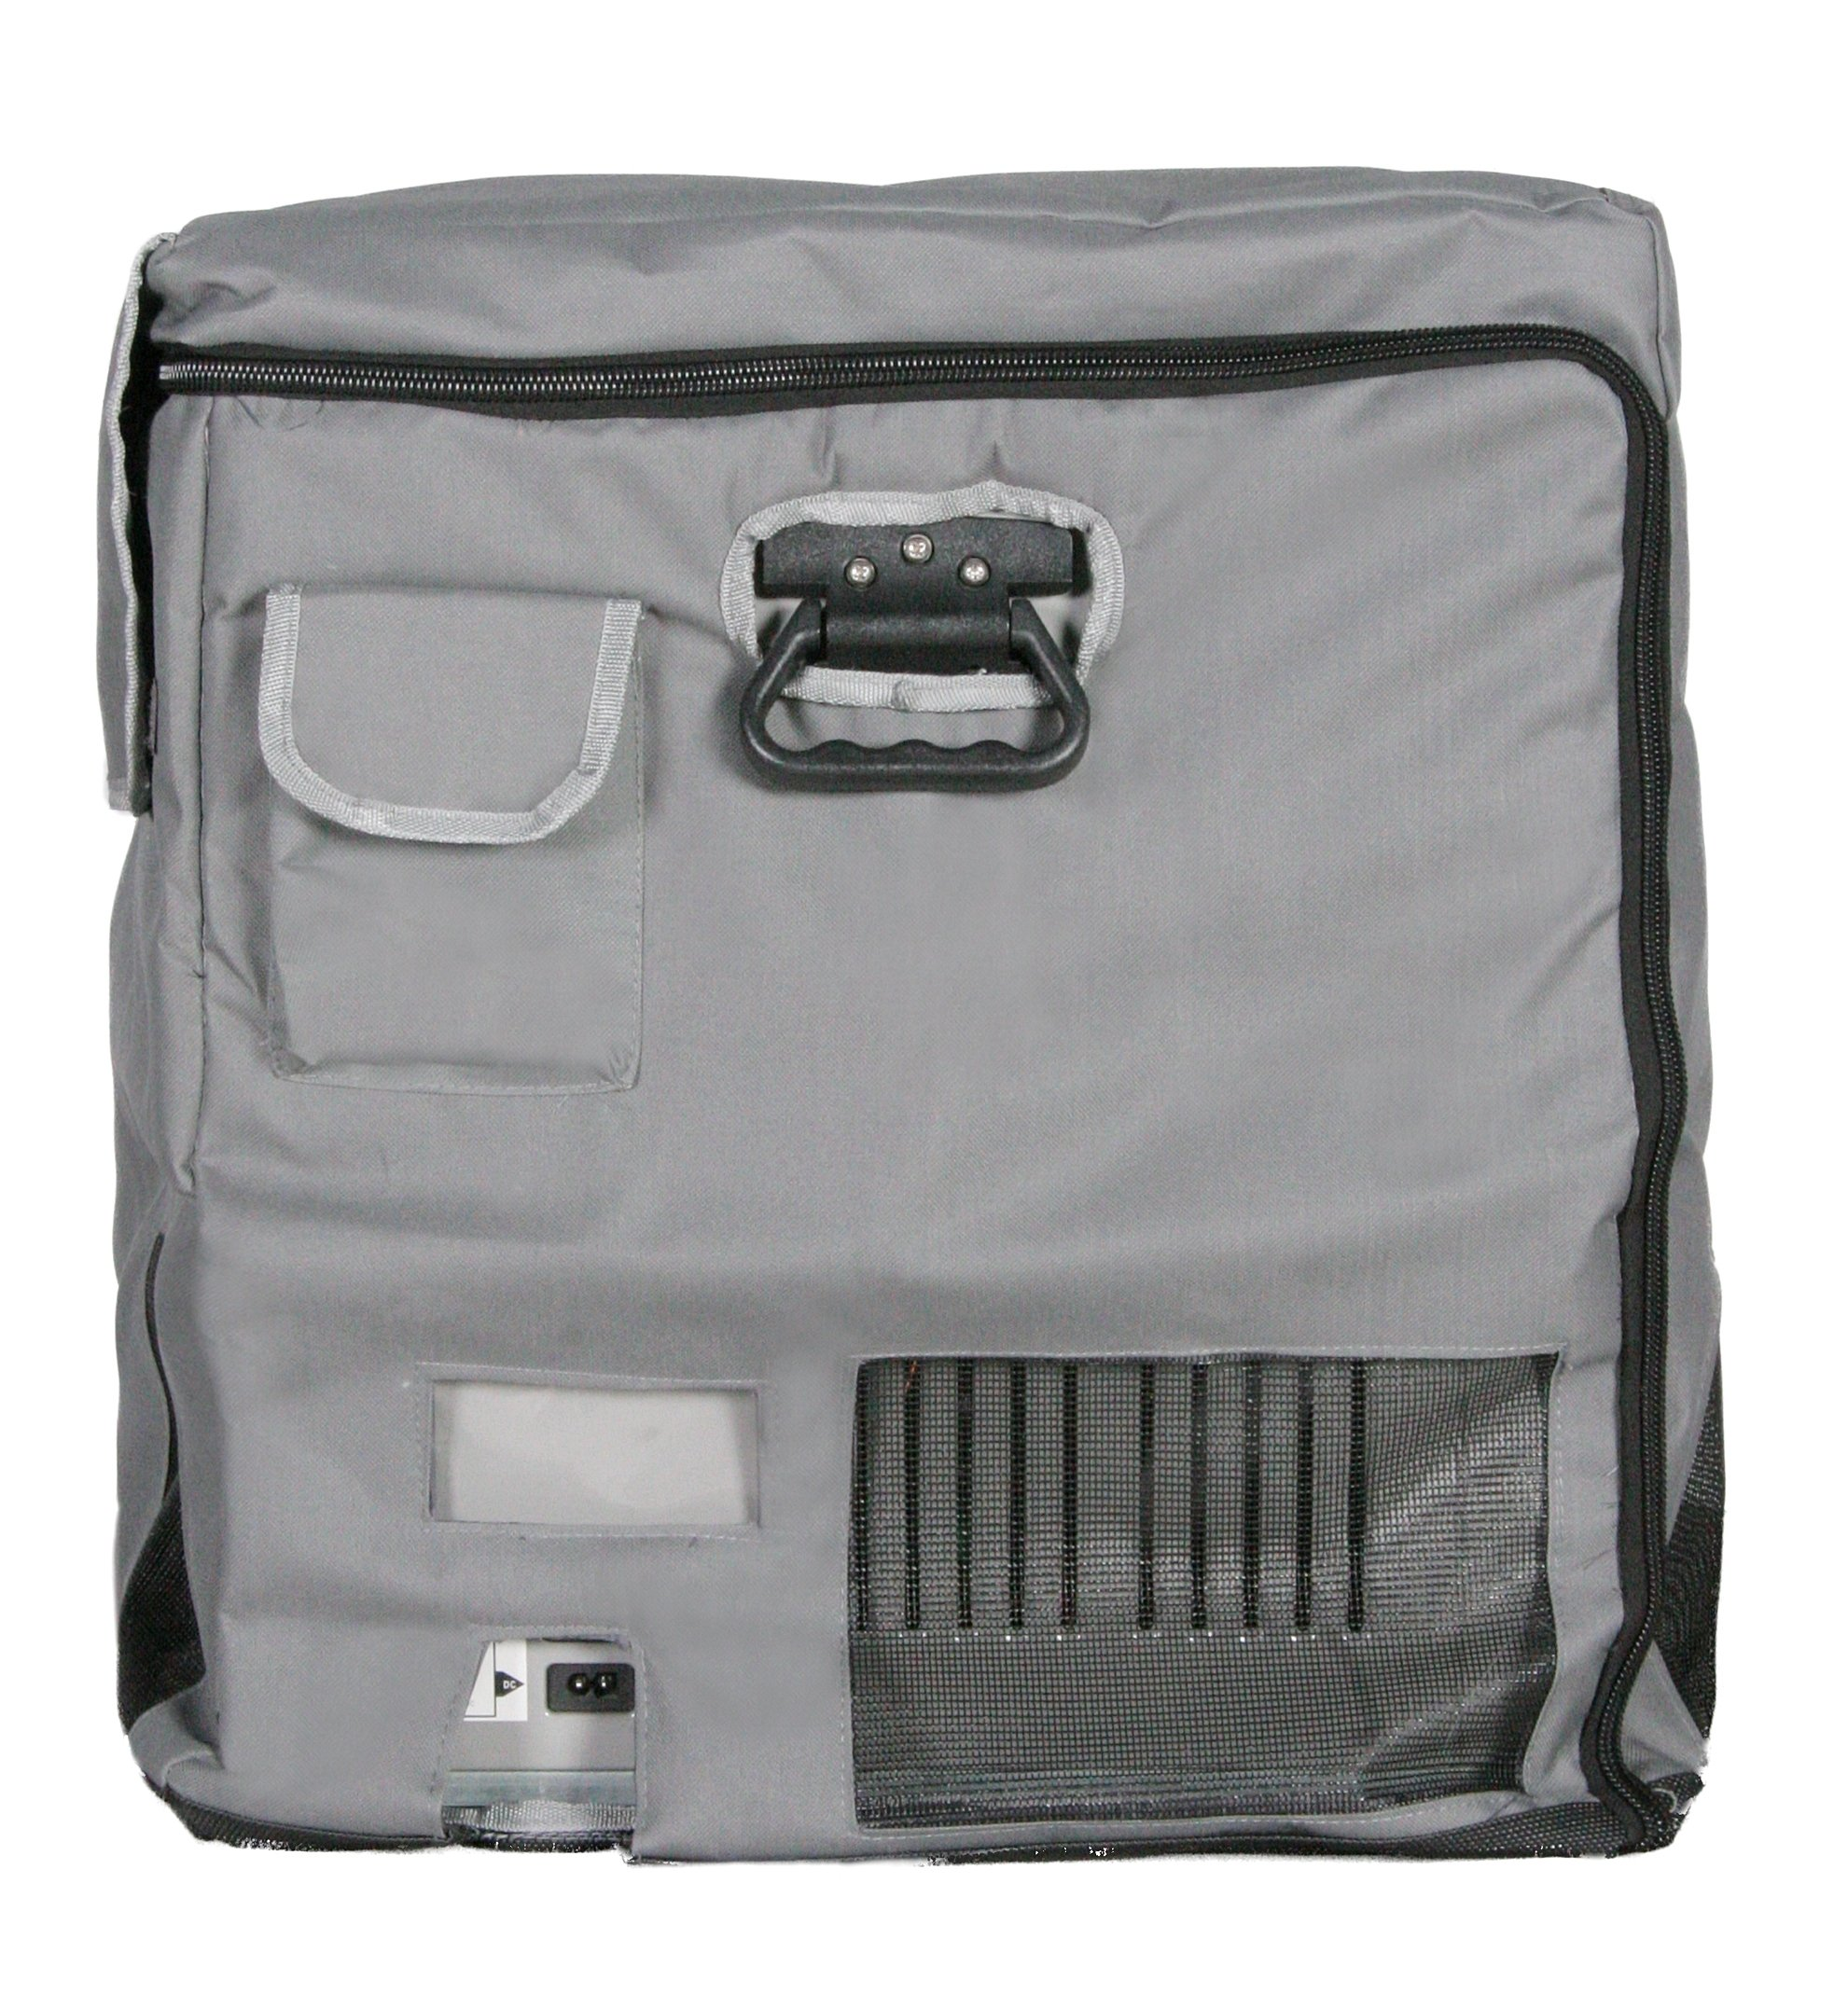 Whynter Insulated Transit Bag for Portable Refrigerator/Freezer Model FM-65G by Whynter (Image #2)